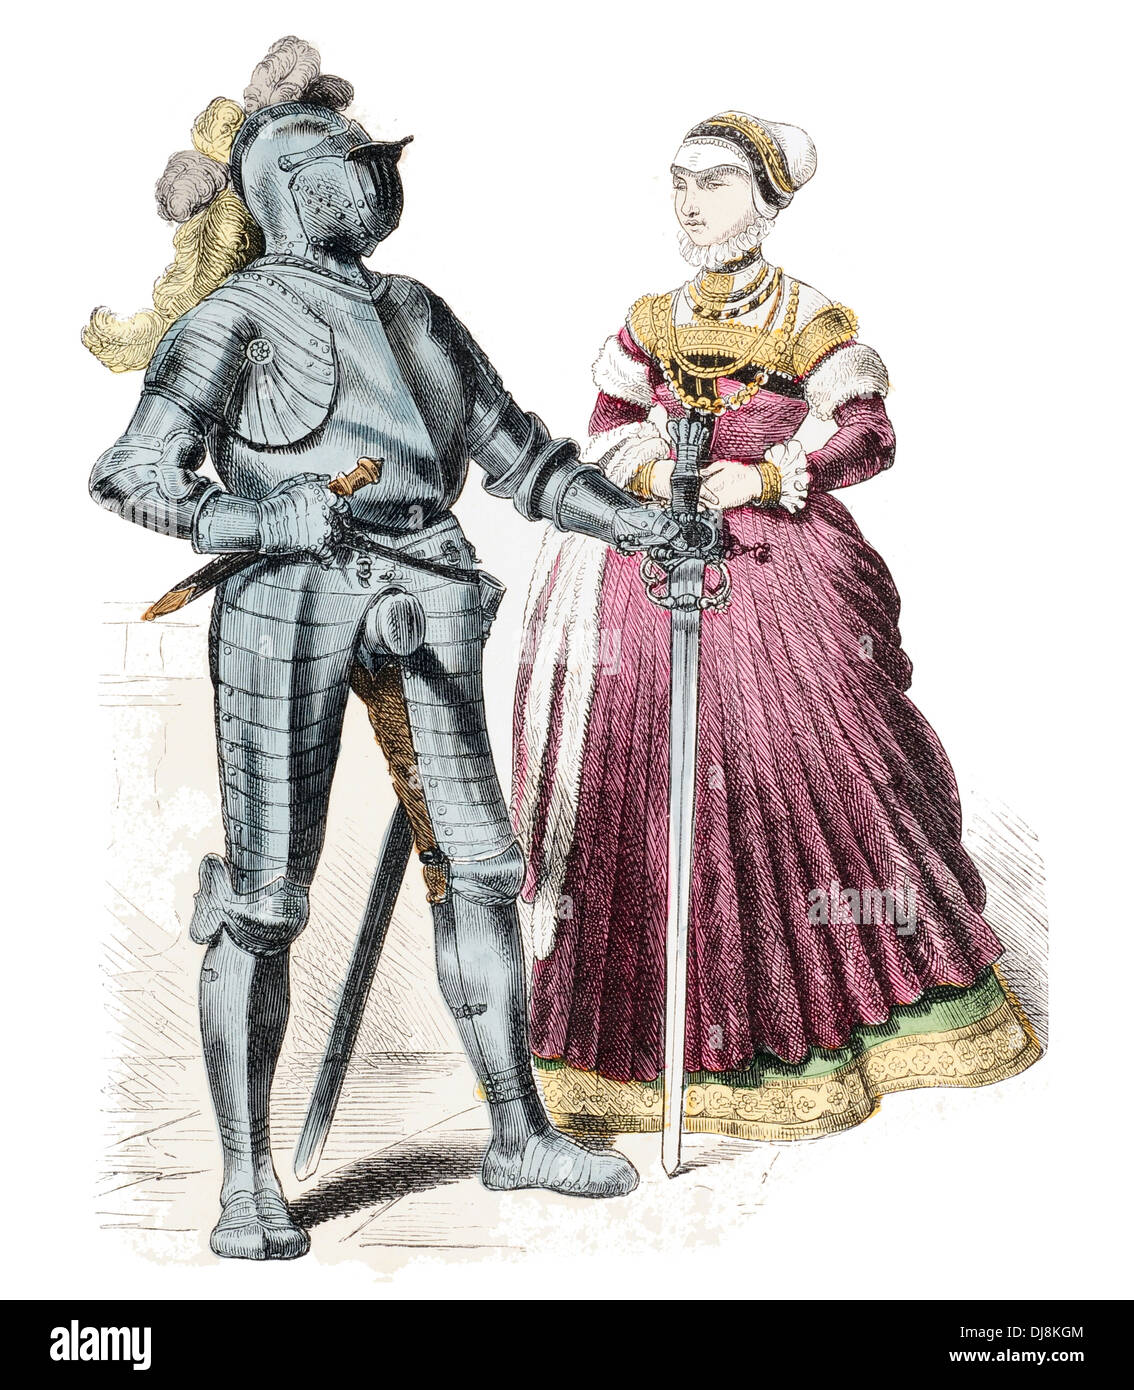 late 16th Century XVI German armoured citizen and citizeness - Stock Image